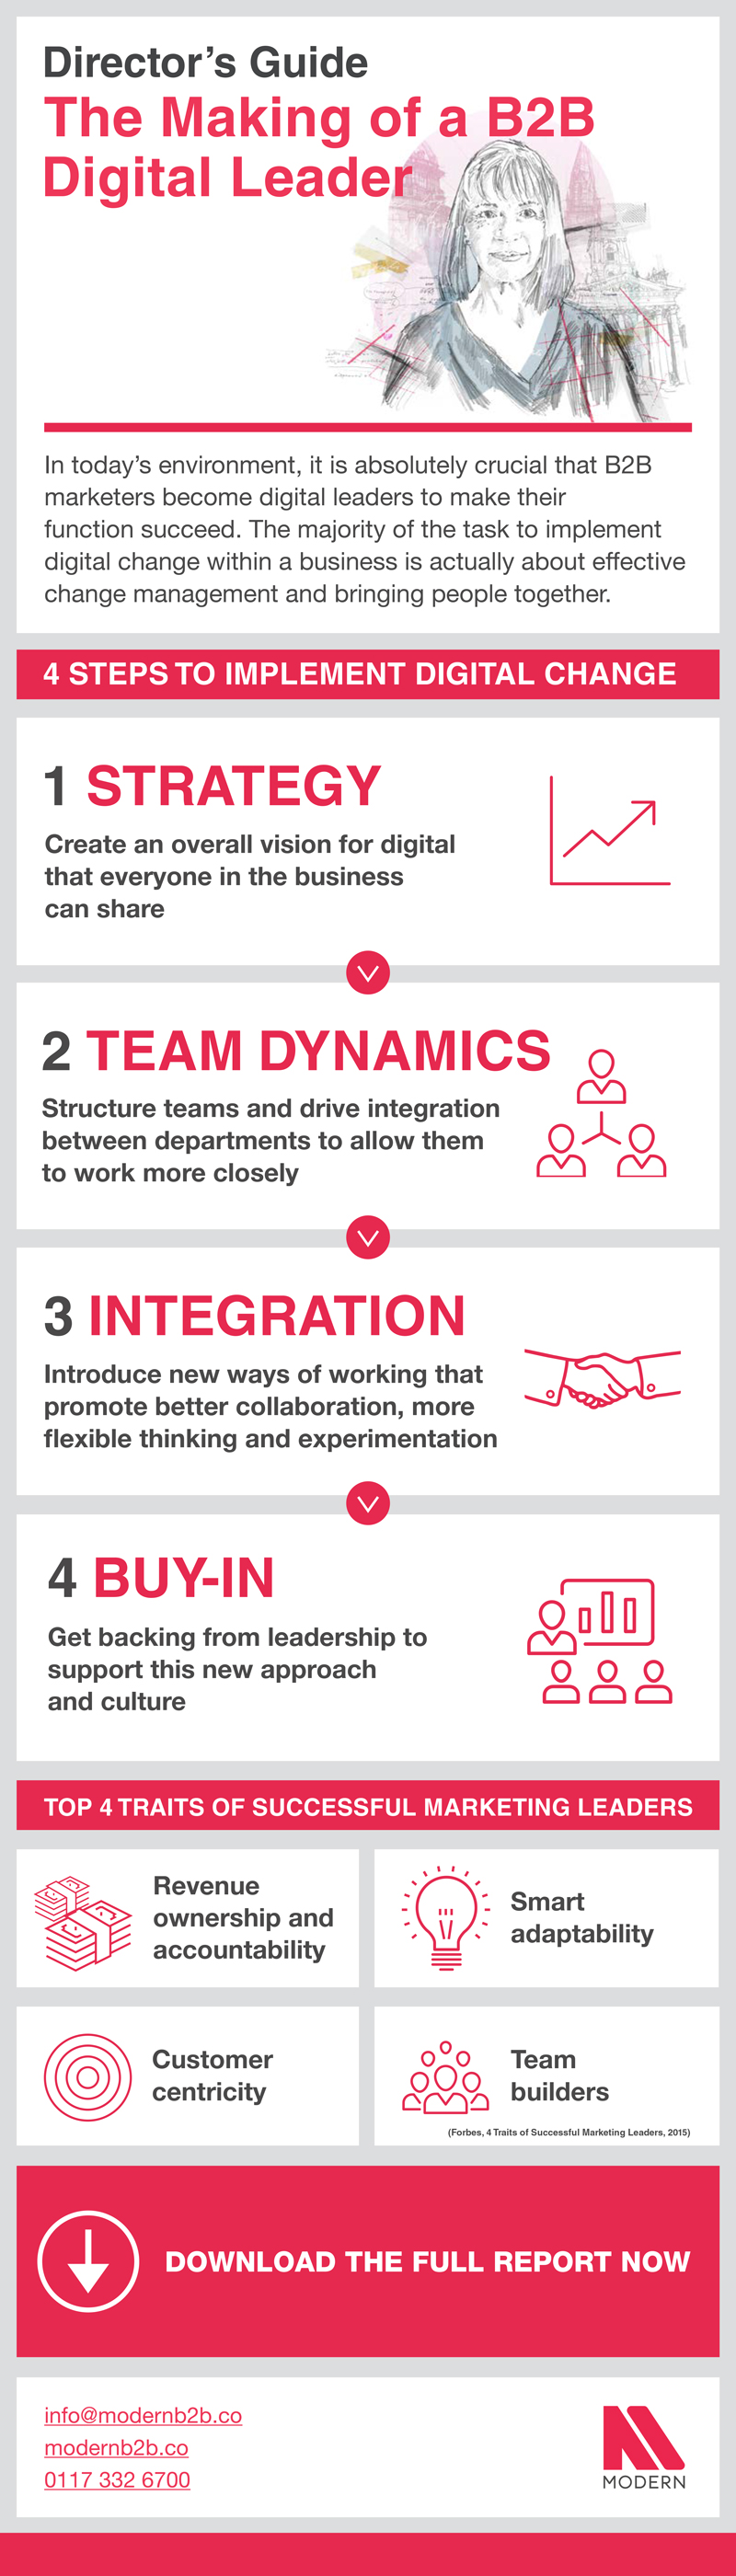 The Making Of A B2B Digital Leader Infographic